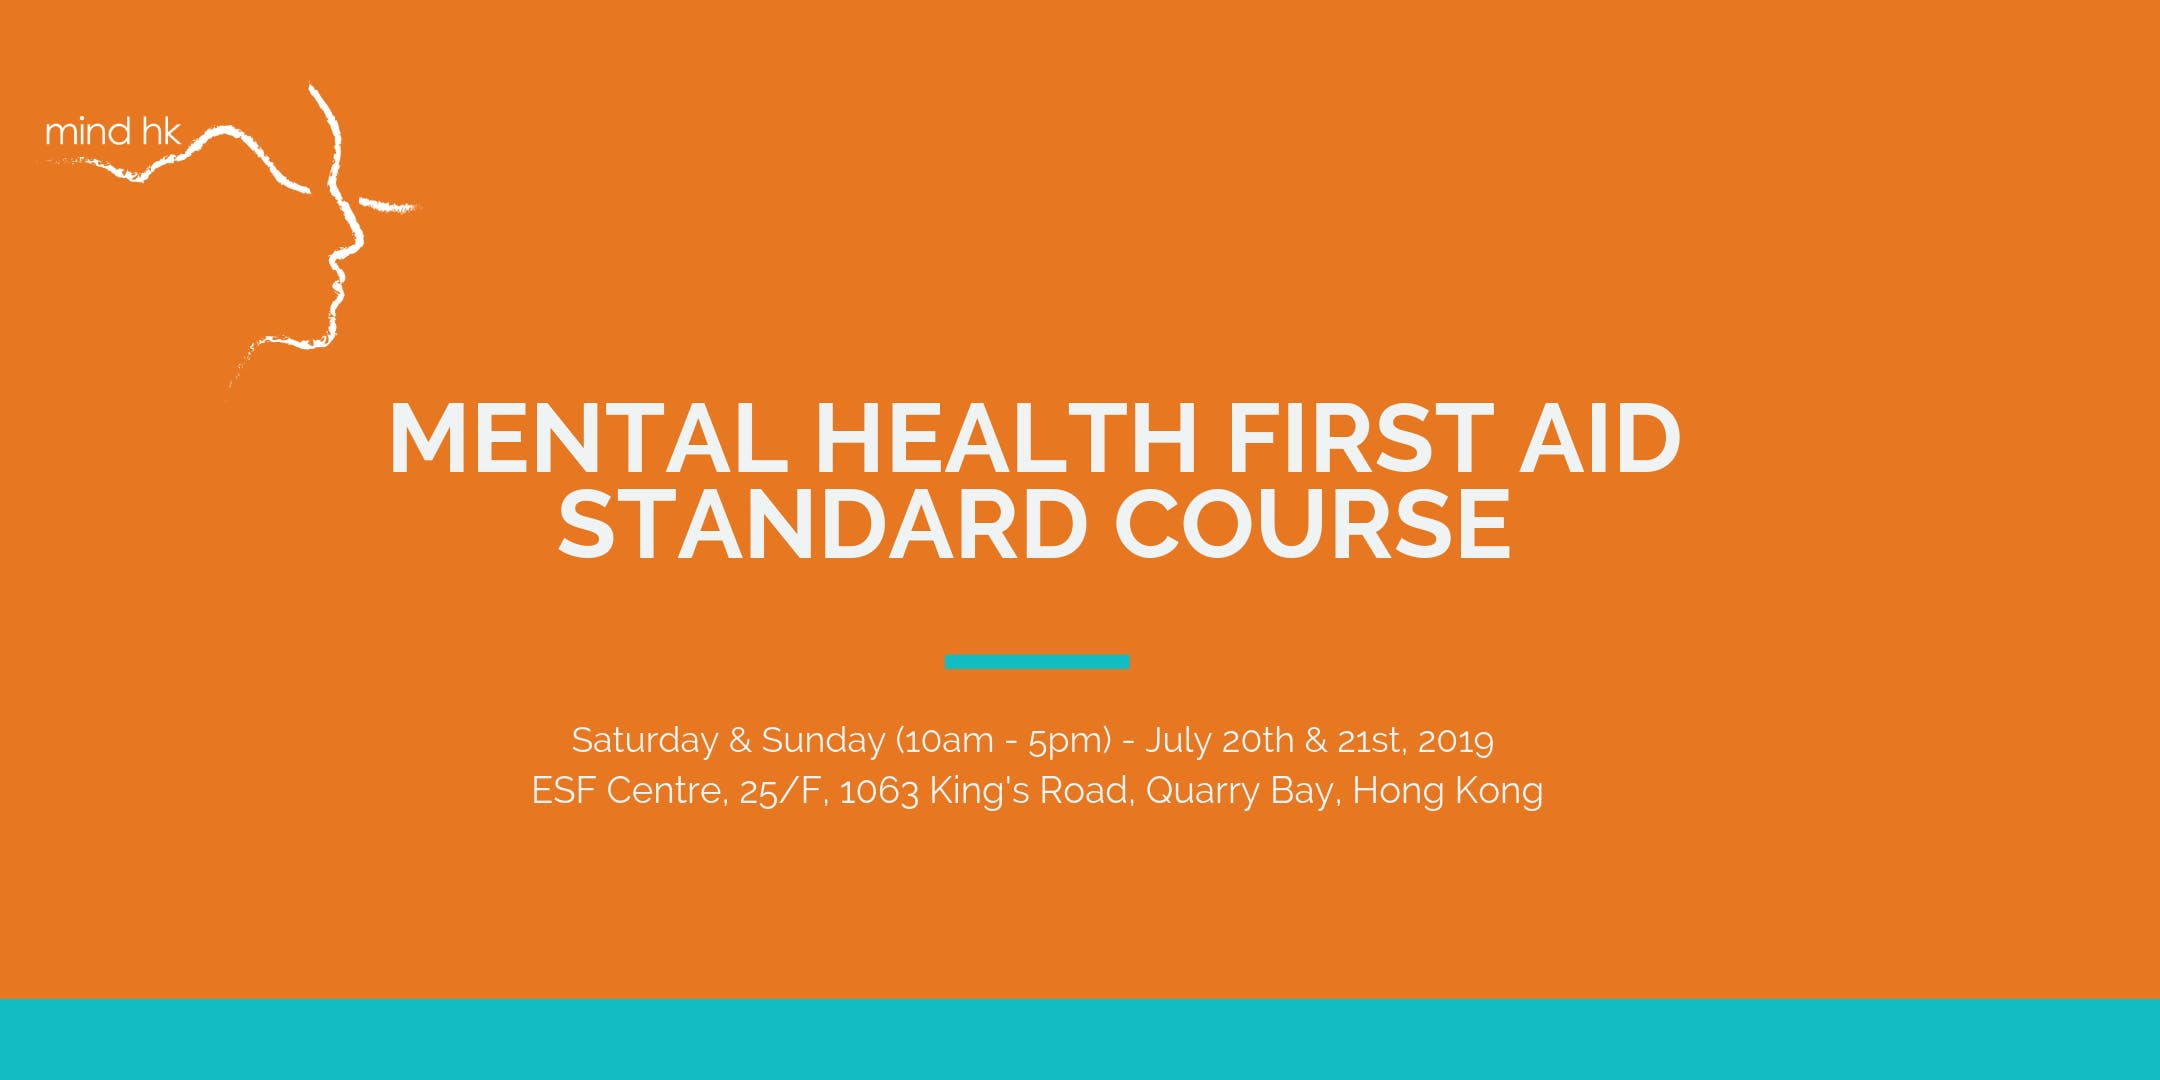 Mental Health First Aid Standard Course JULY (12 hours over 2-days): July 20 & 21